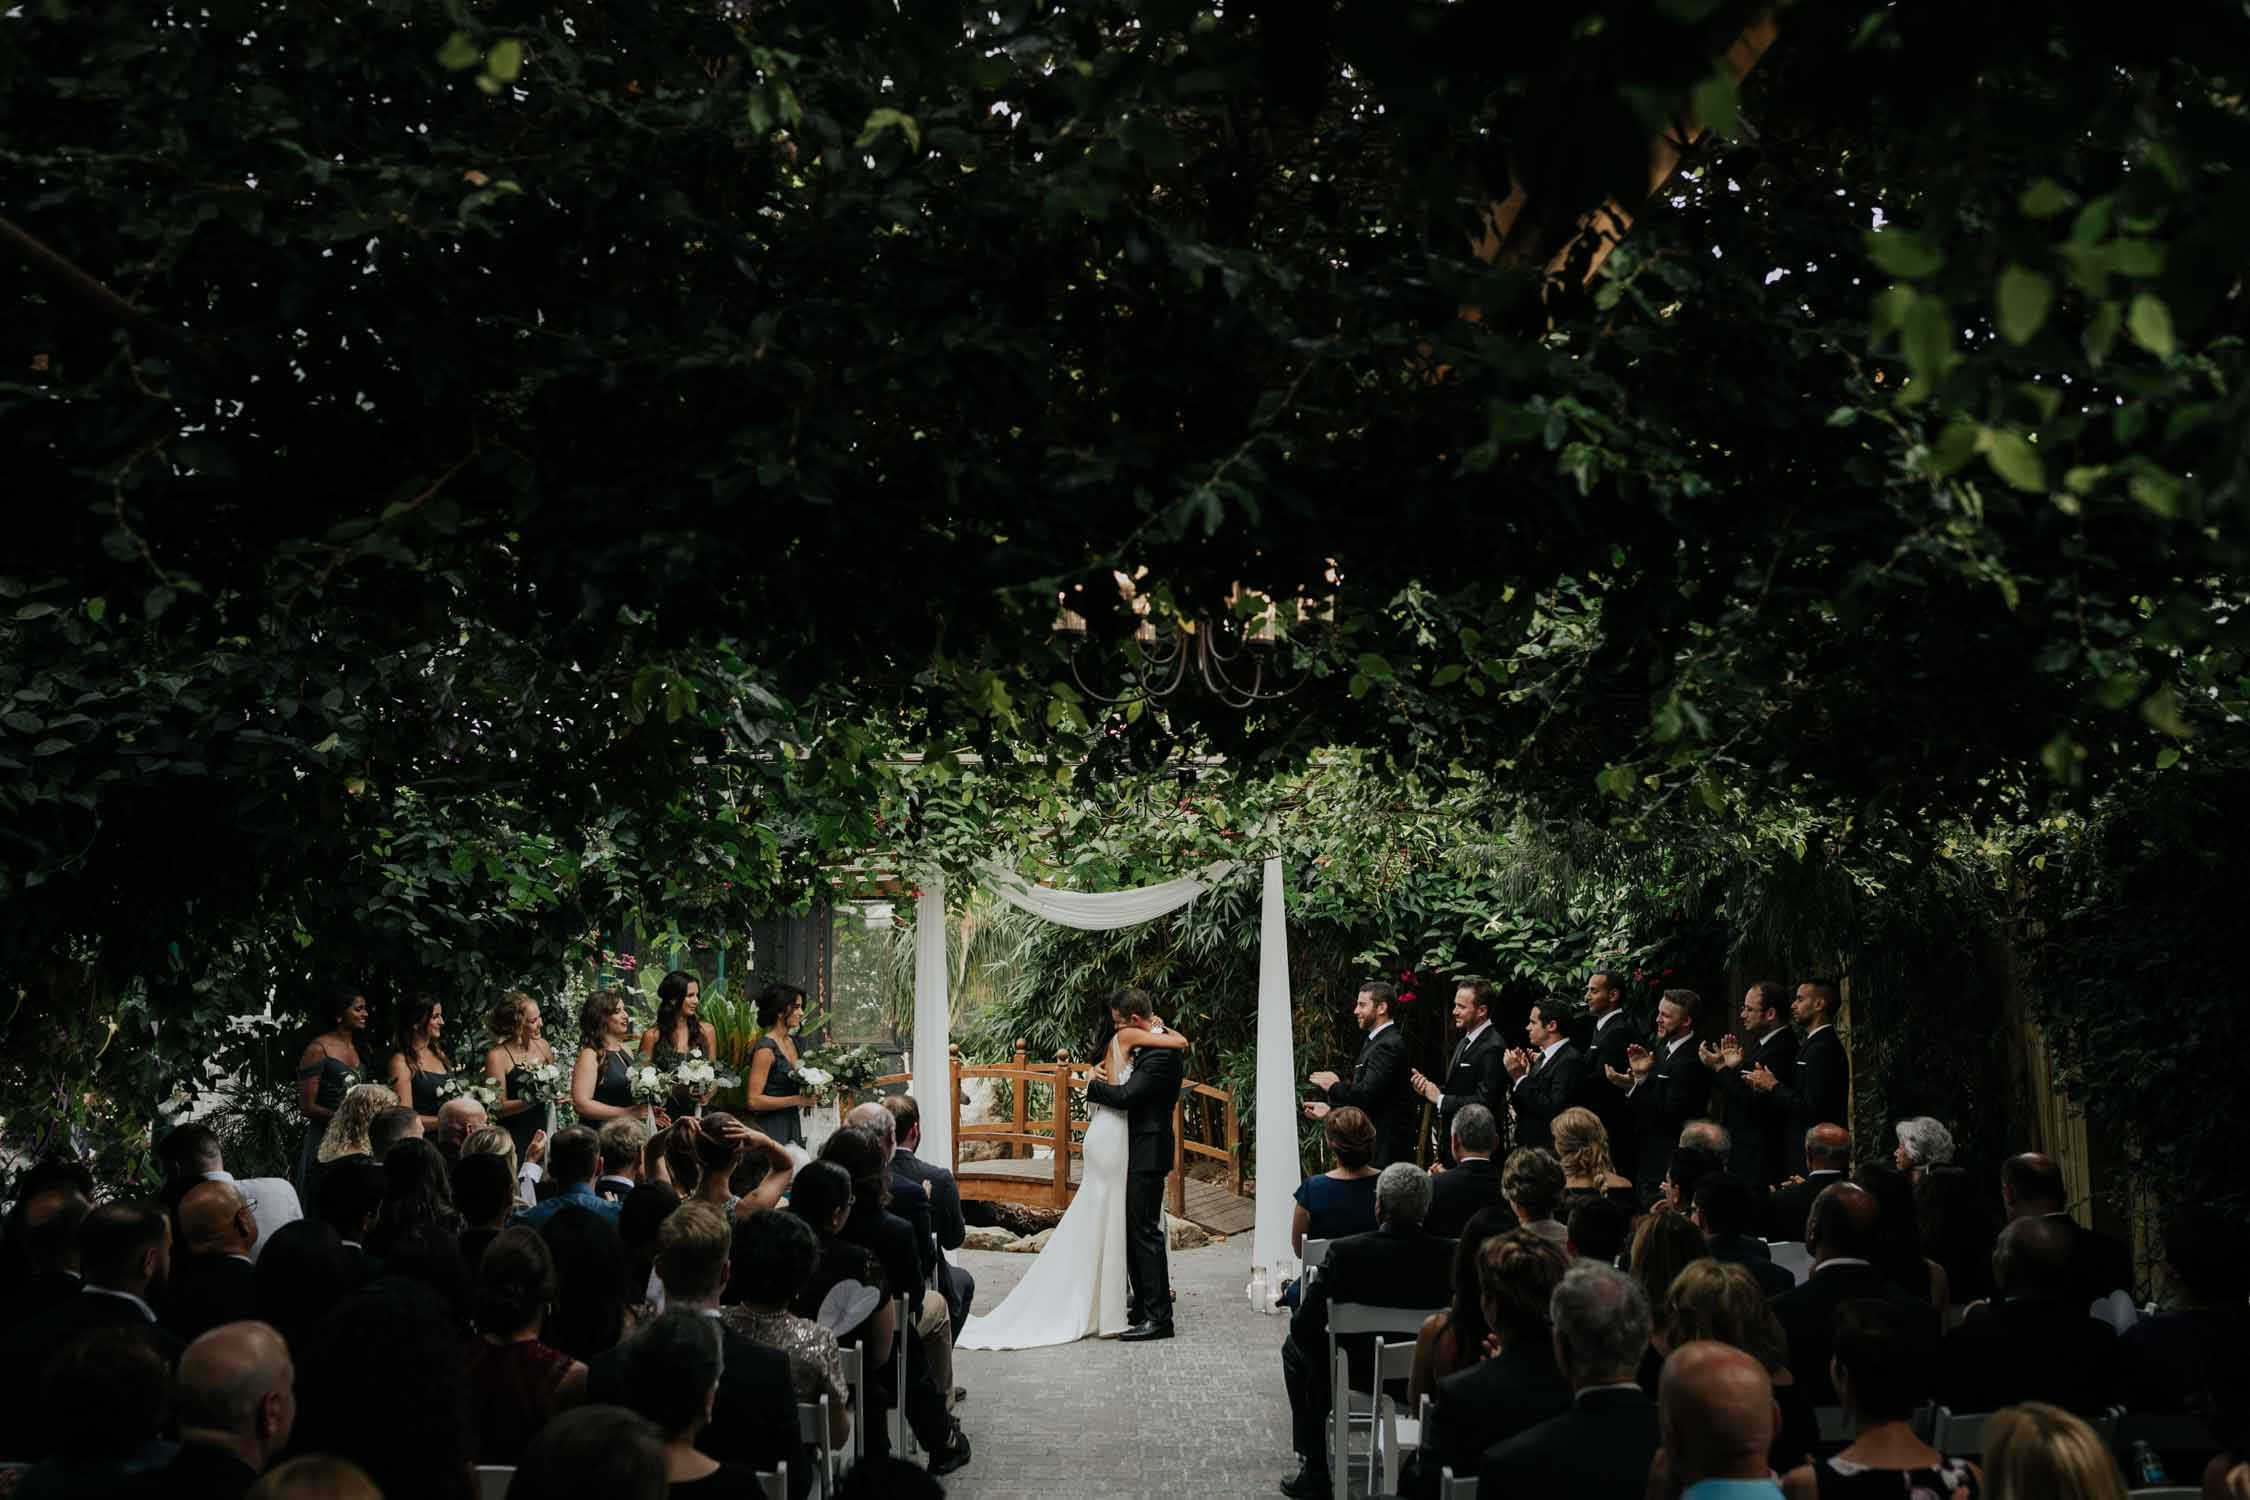 Emotional romantic moment after the first kiss of bride and groom hugging at at Madsen's Greenhouse wedding venue in Newmarket close to Toronto